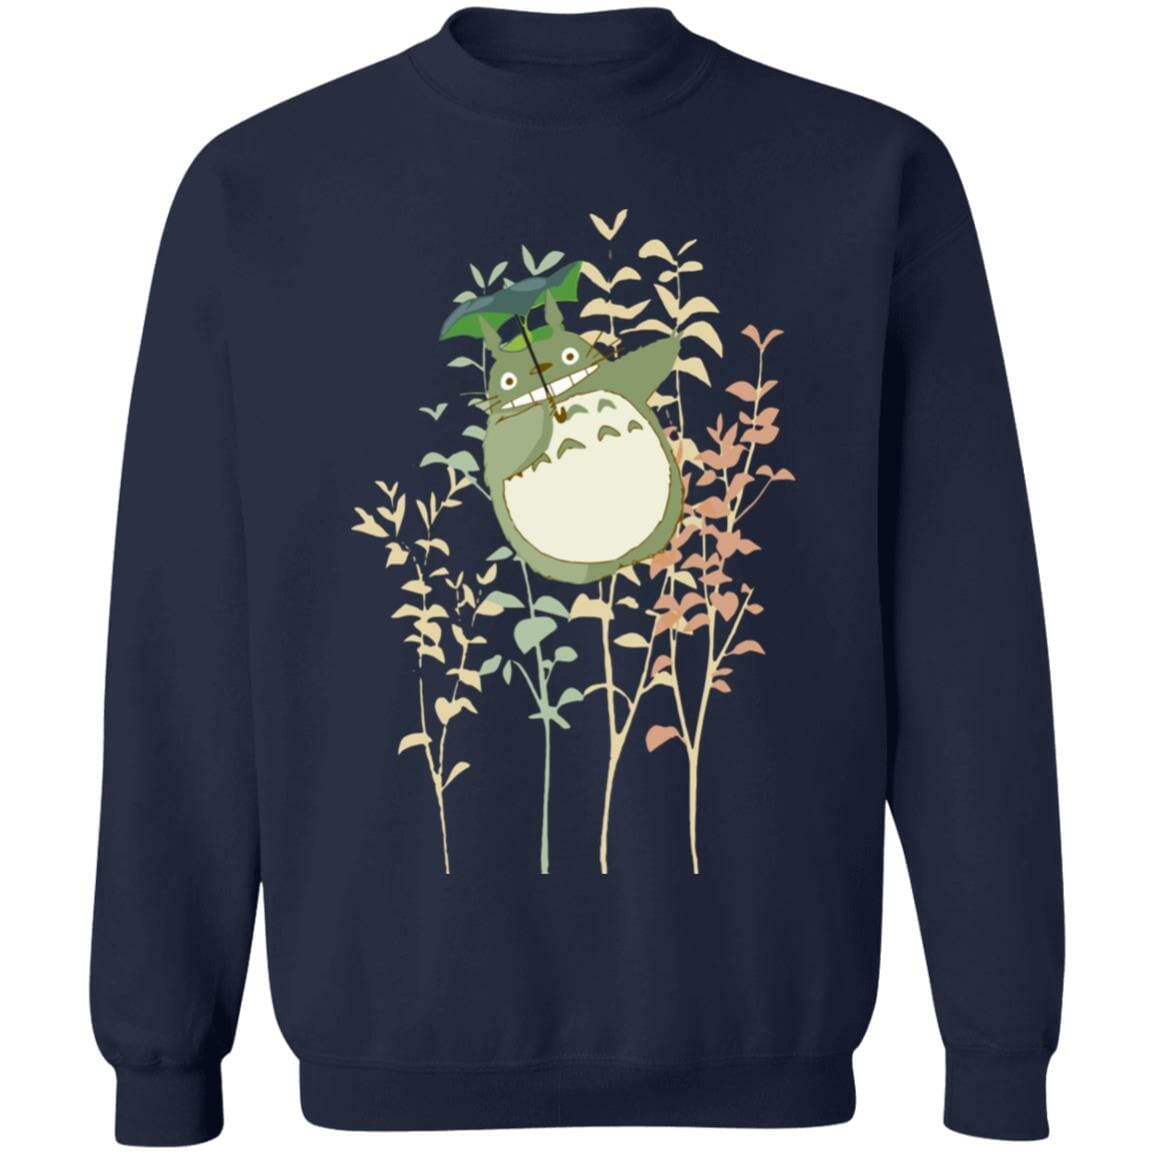 My Neighbor Totoro – Totoro and Umbrella Sweatshirt